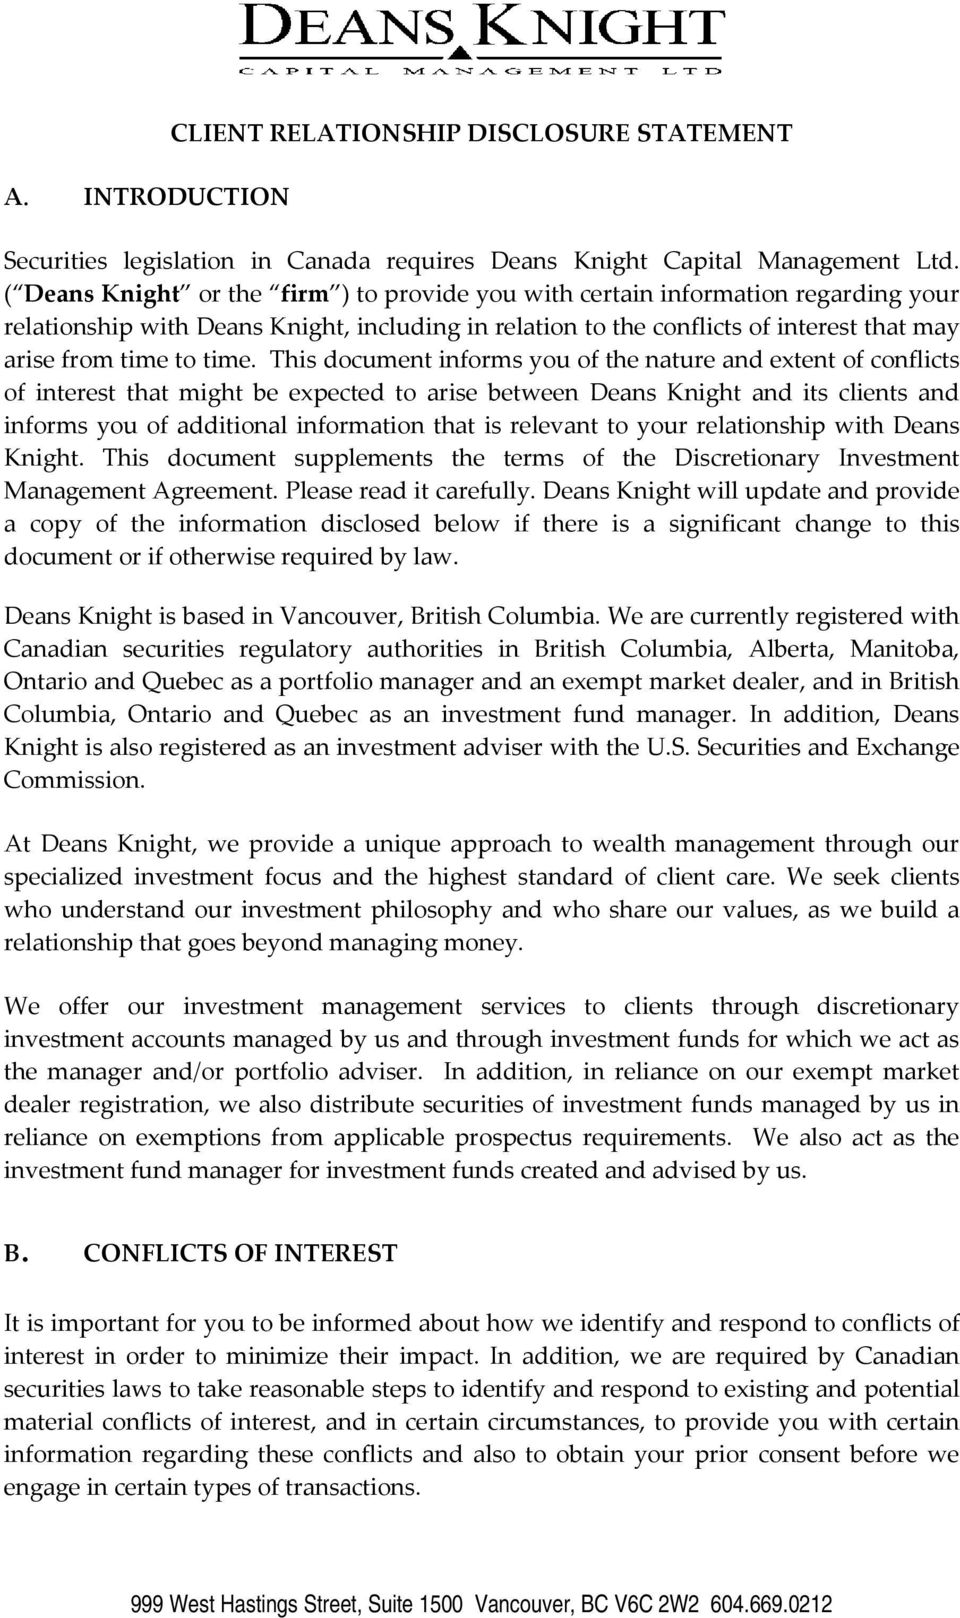 This document informs you of the nature and extent of conflicts of interest that might be expected to arise between Deans Knight and its clients and informs you of additional information that is